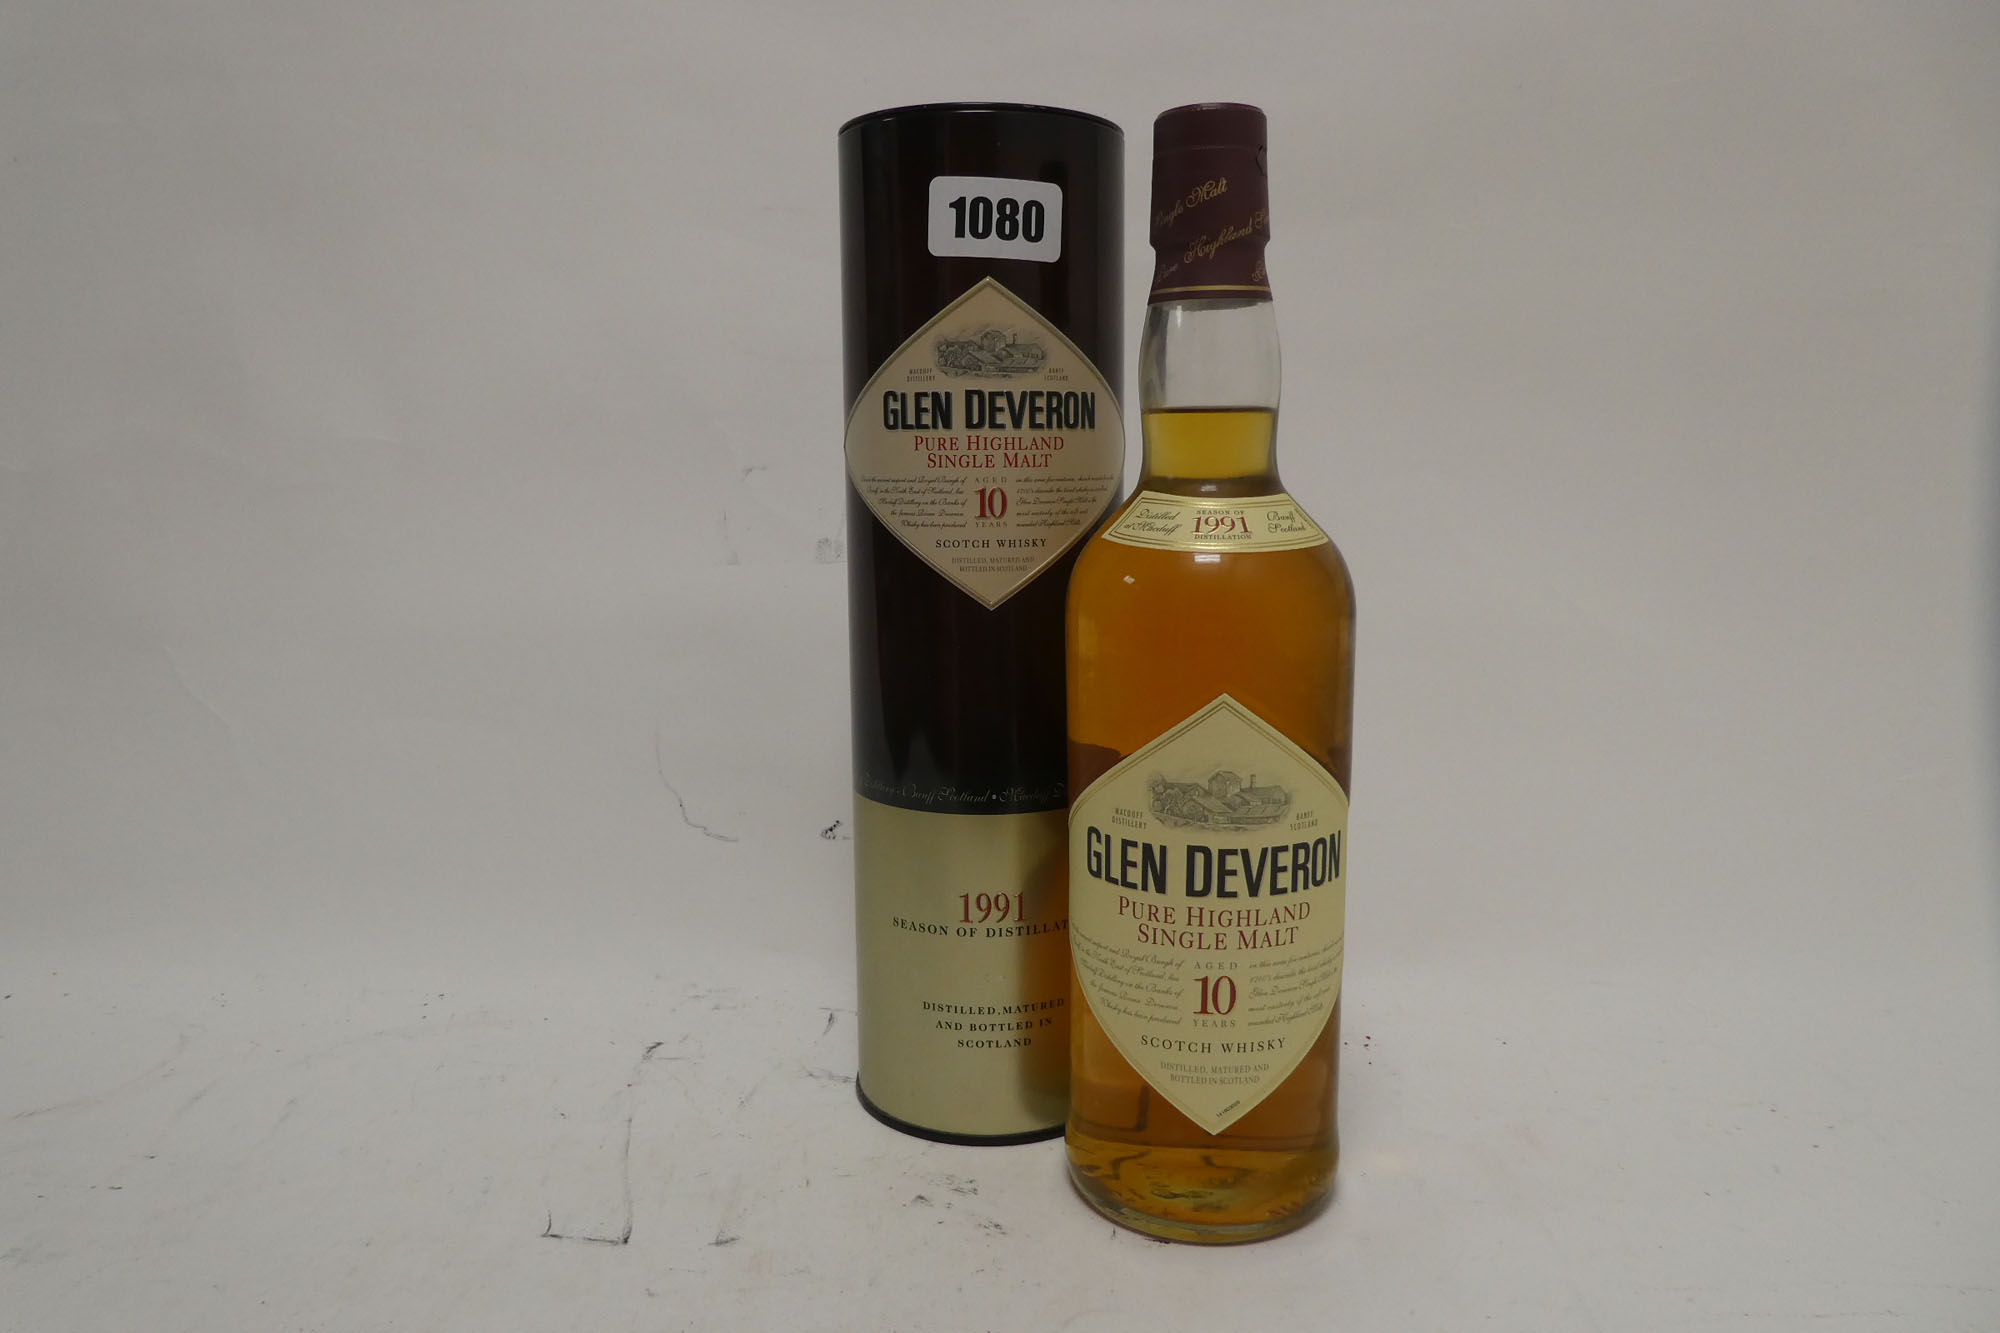 A bottle of Glen Deveron 10 year old Pure Highland Single Malt Scotch Whisky Distilled 1991 with